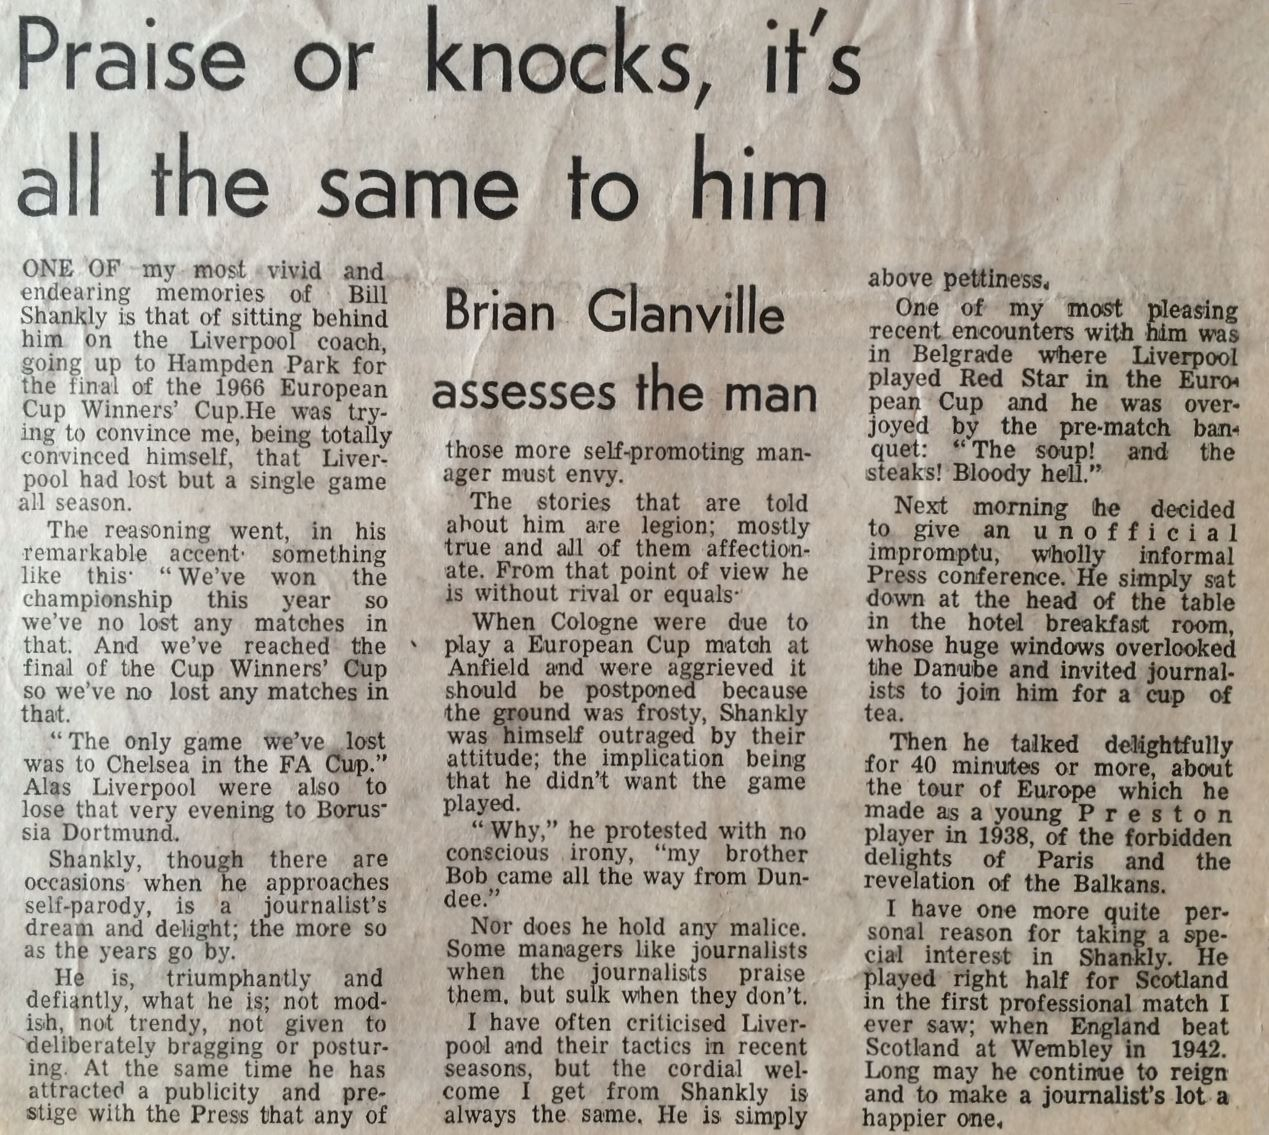 Brian Glanville's memories of Shankly